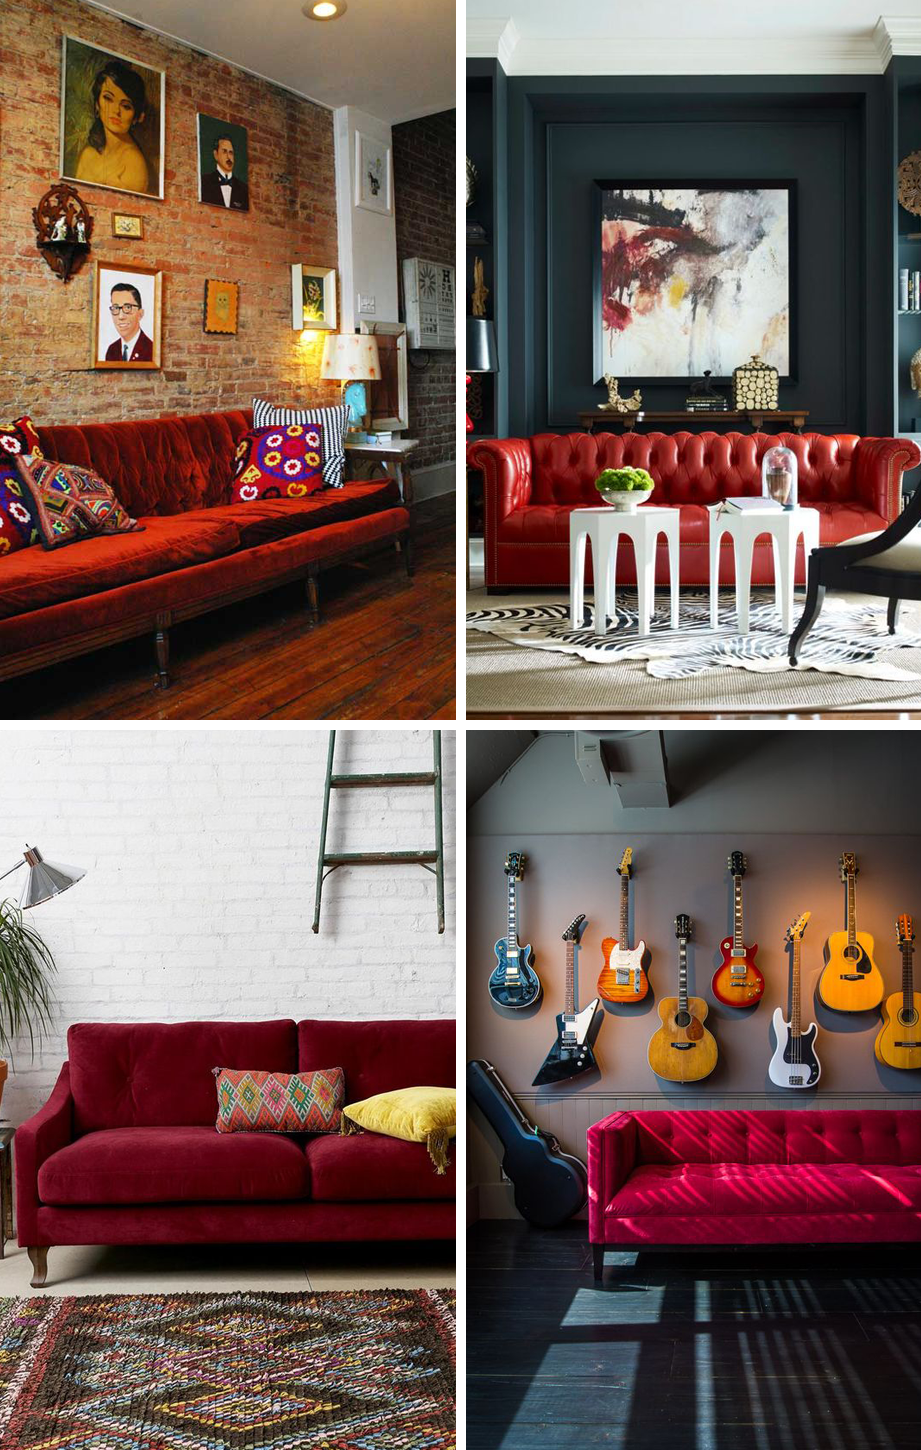 24 Colorful Couches That Make a Statement | Home Inspiration